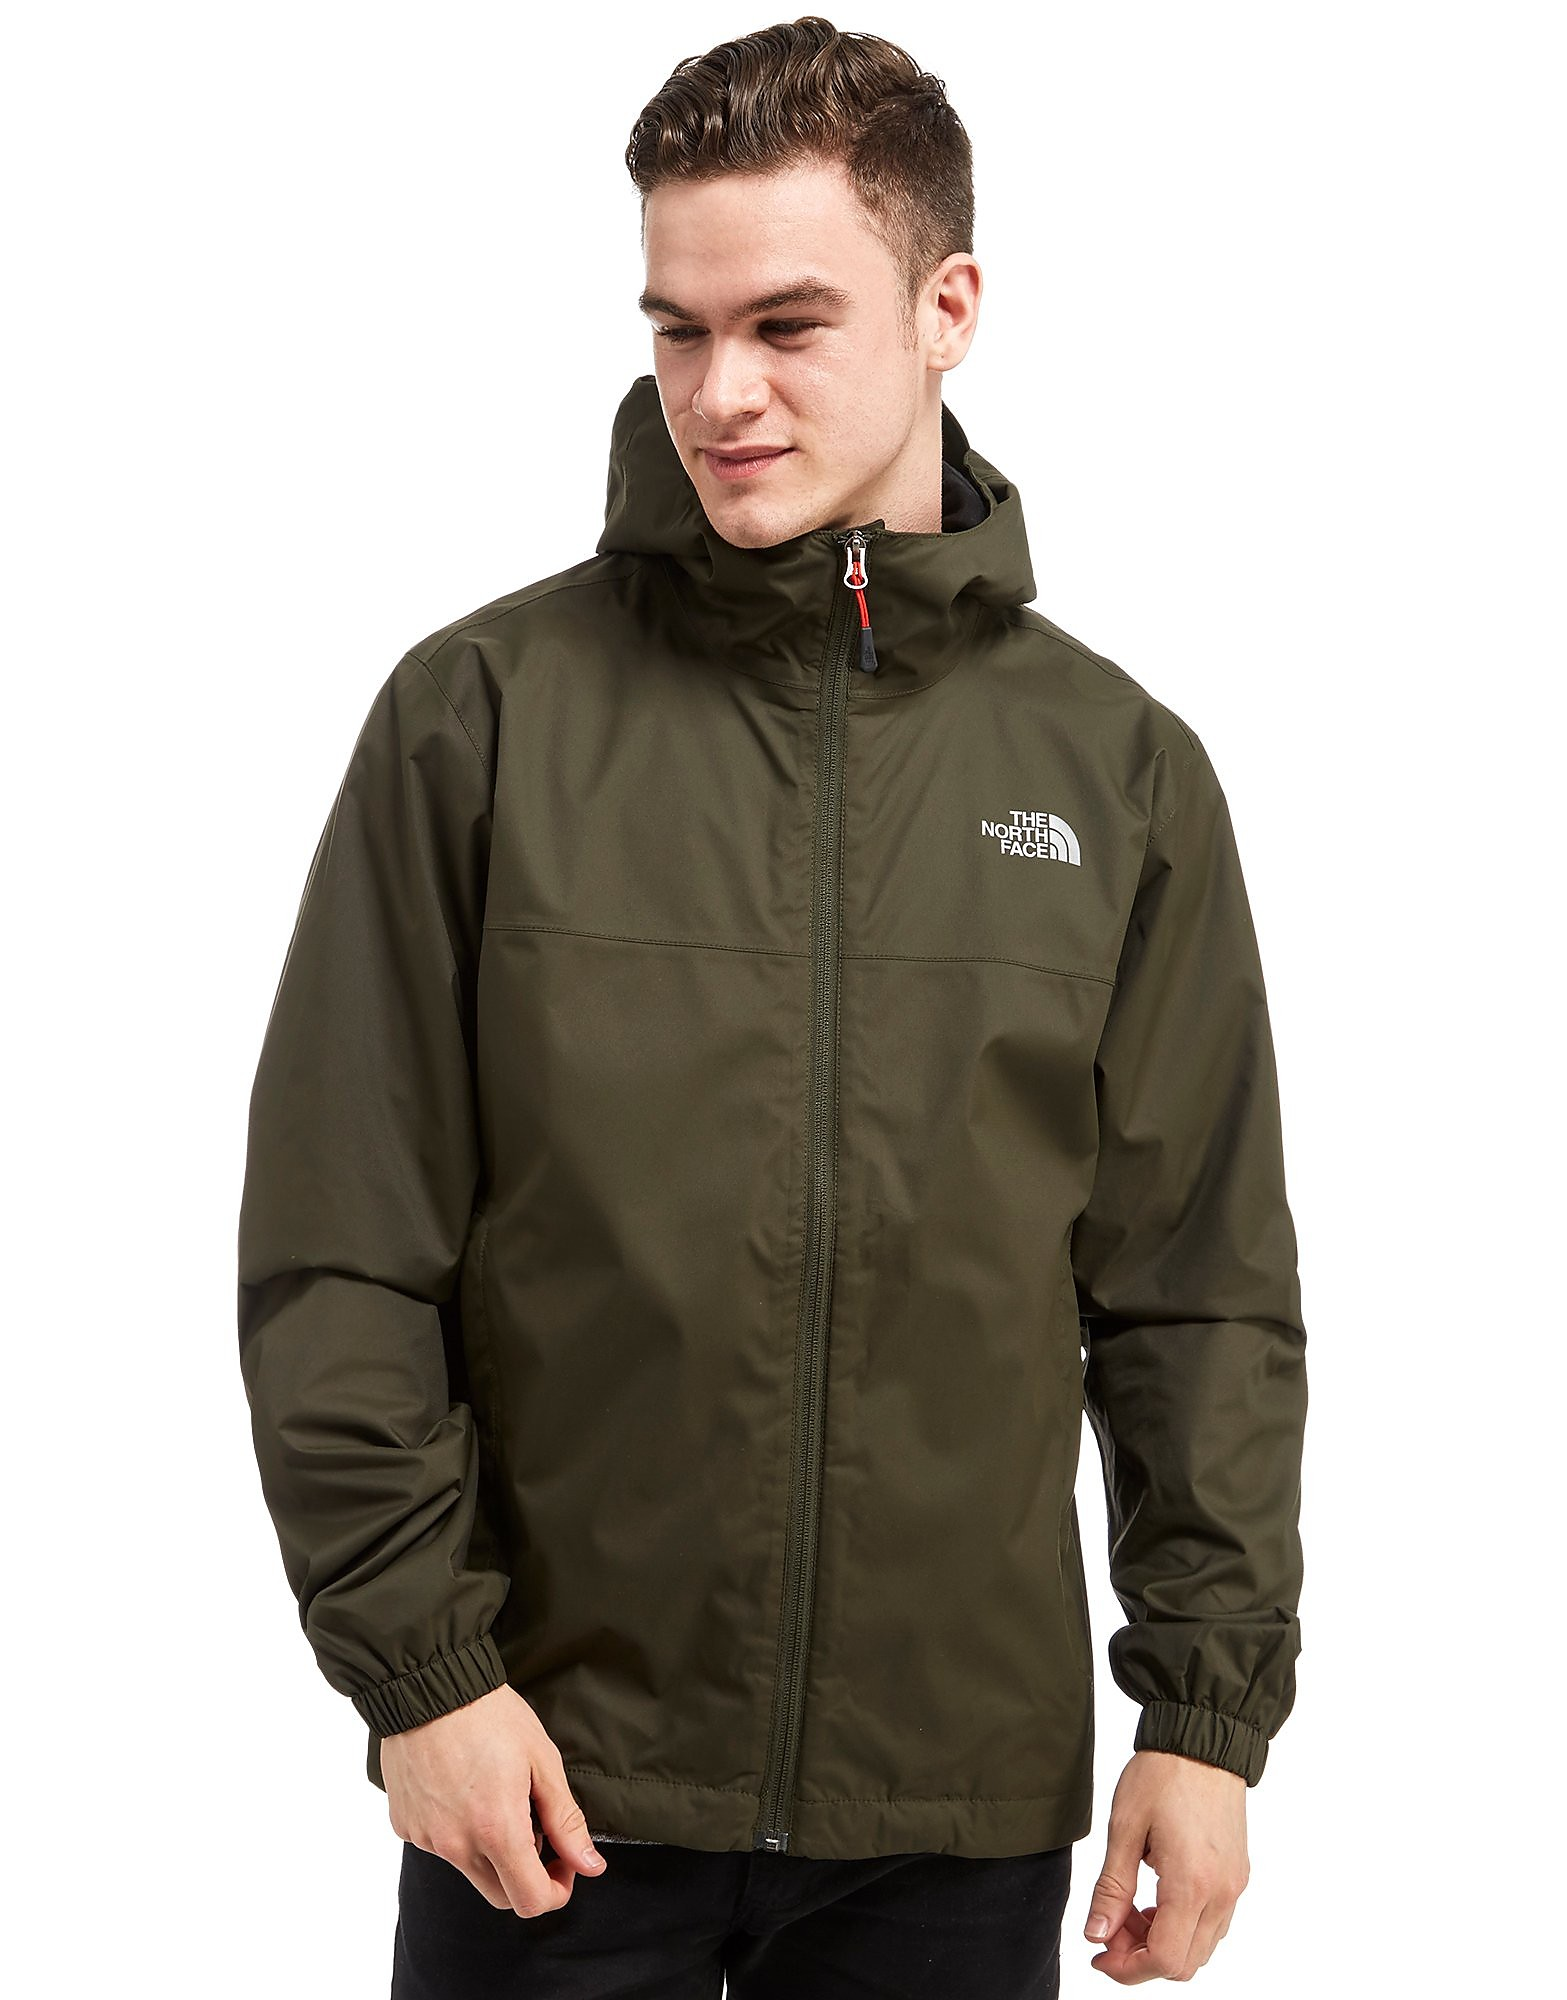 The North Face OST Jacket